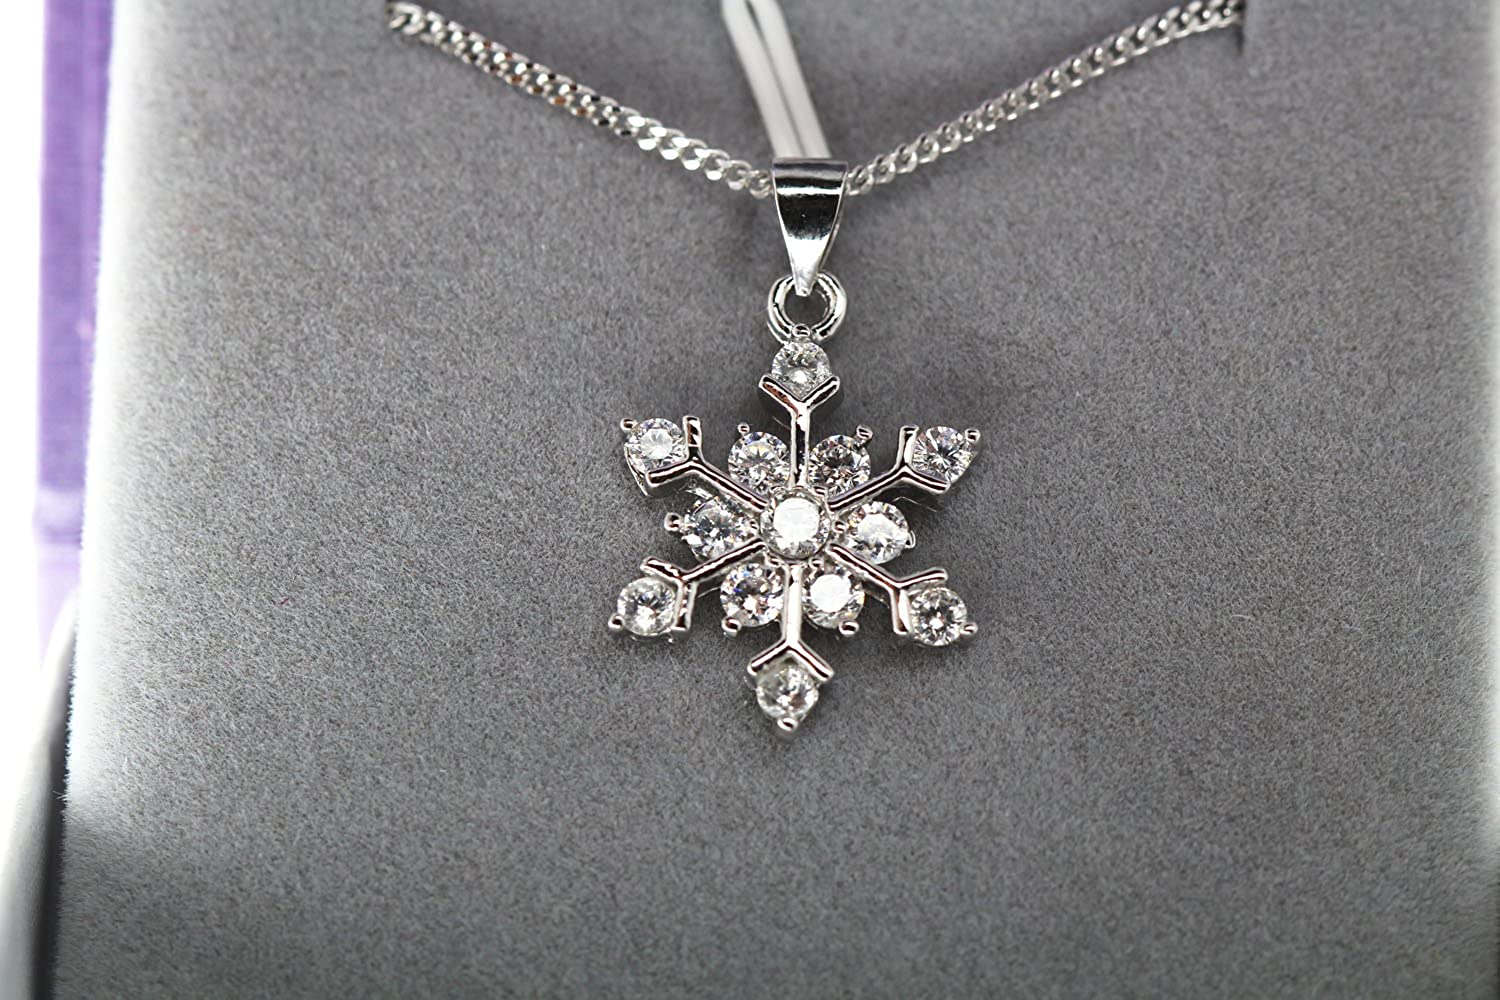 f1738 findout Ladies Sterling Silver Blue White Cubic Zirconia Snowflake Pendant Necklace .for Women Girls.